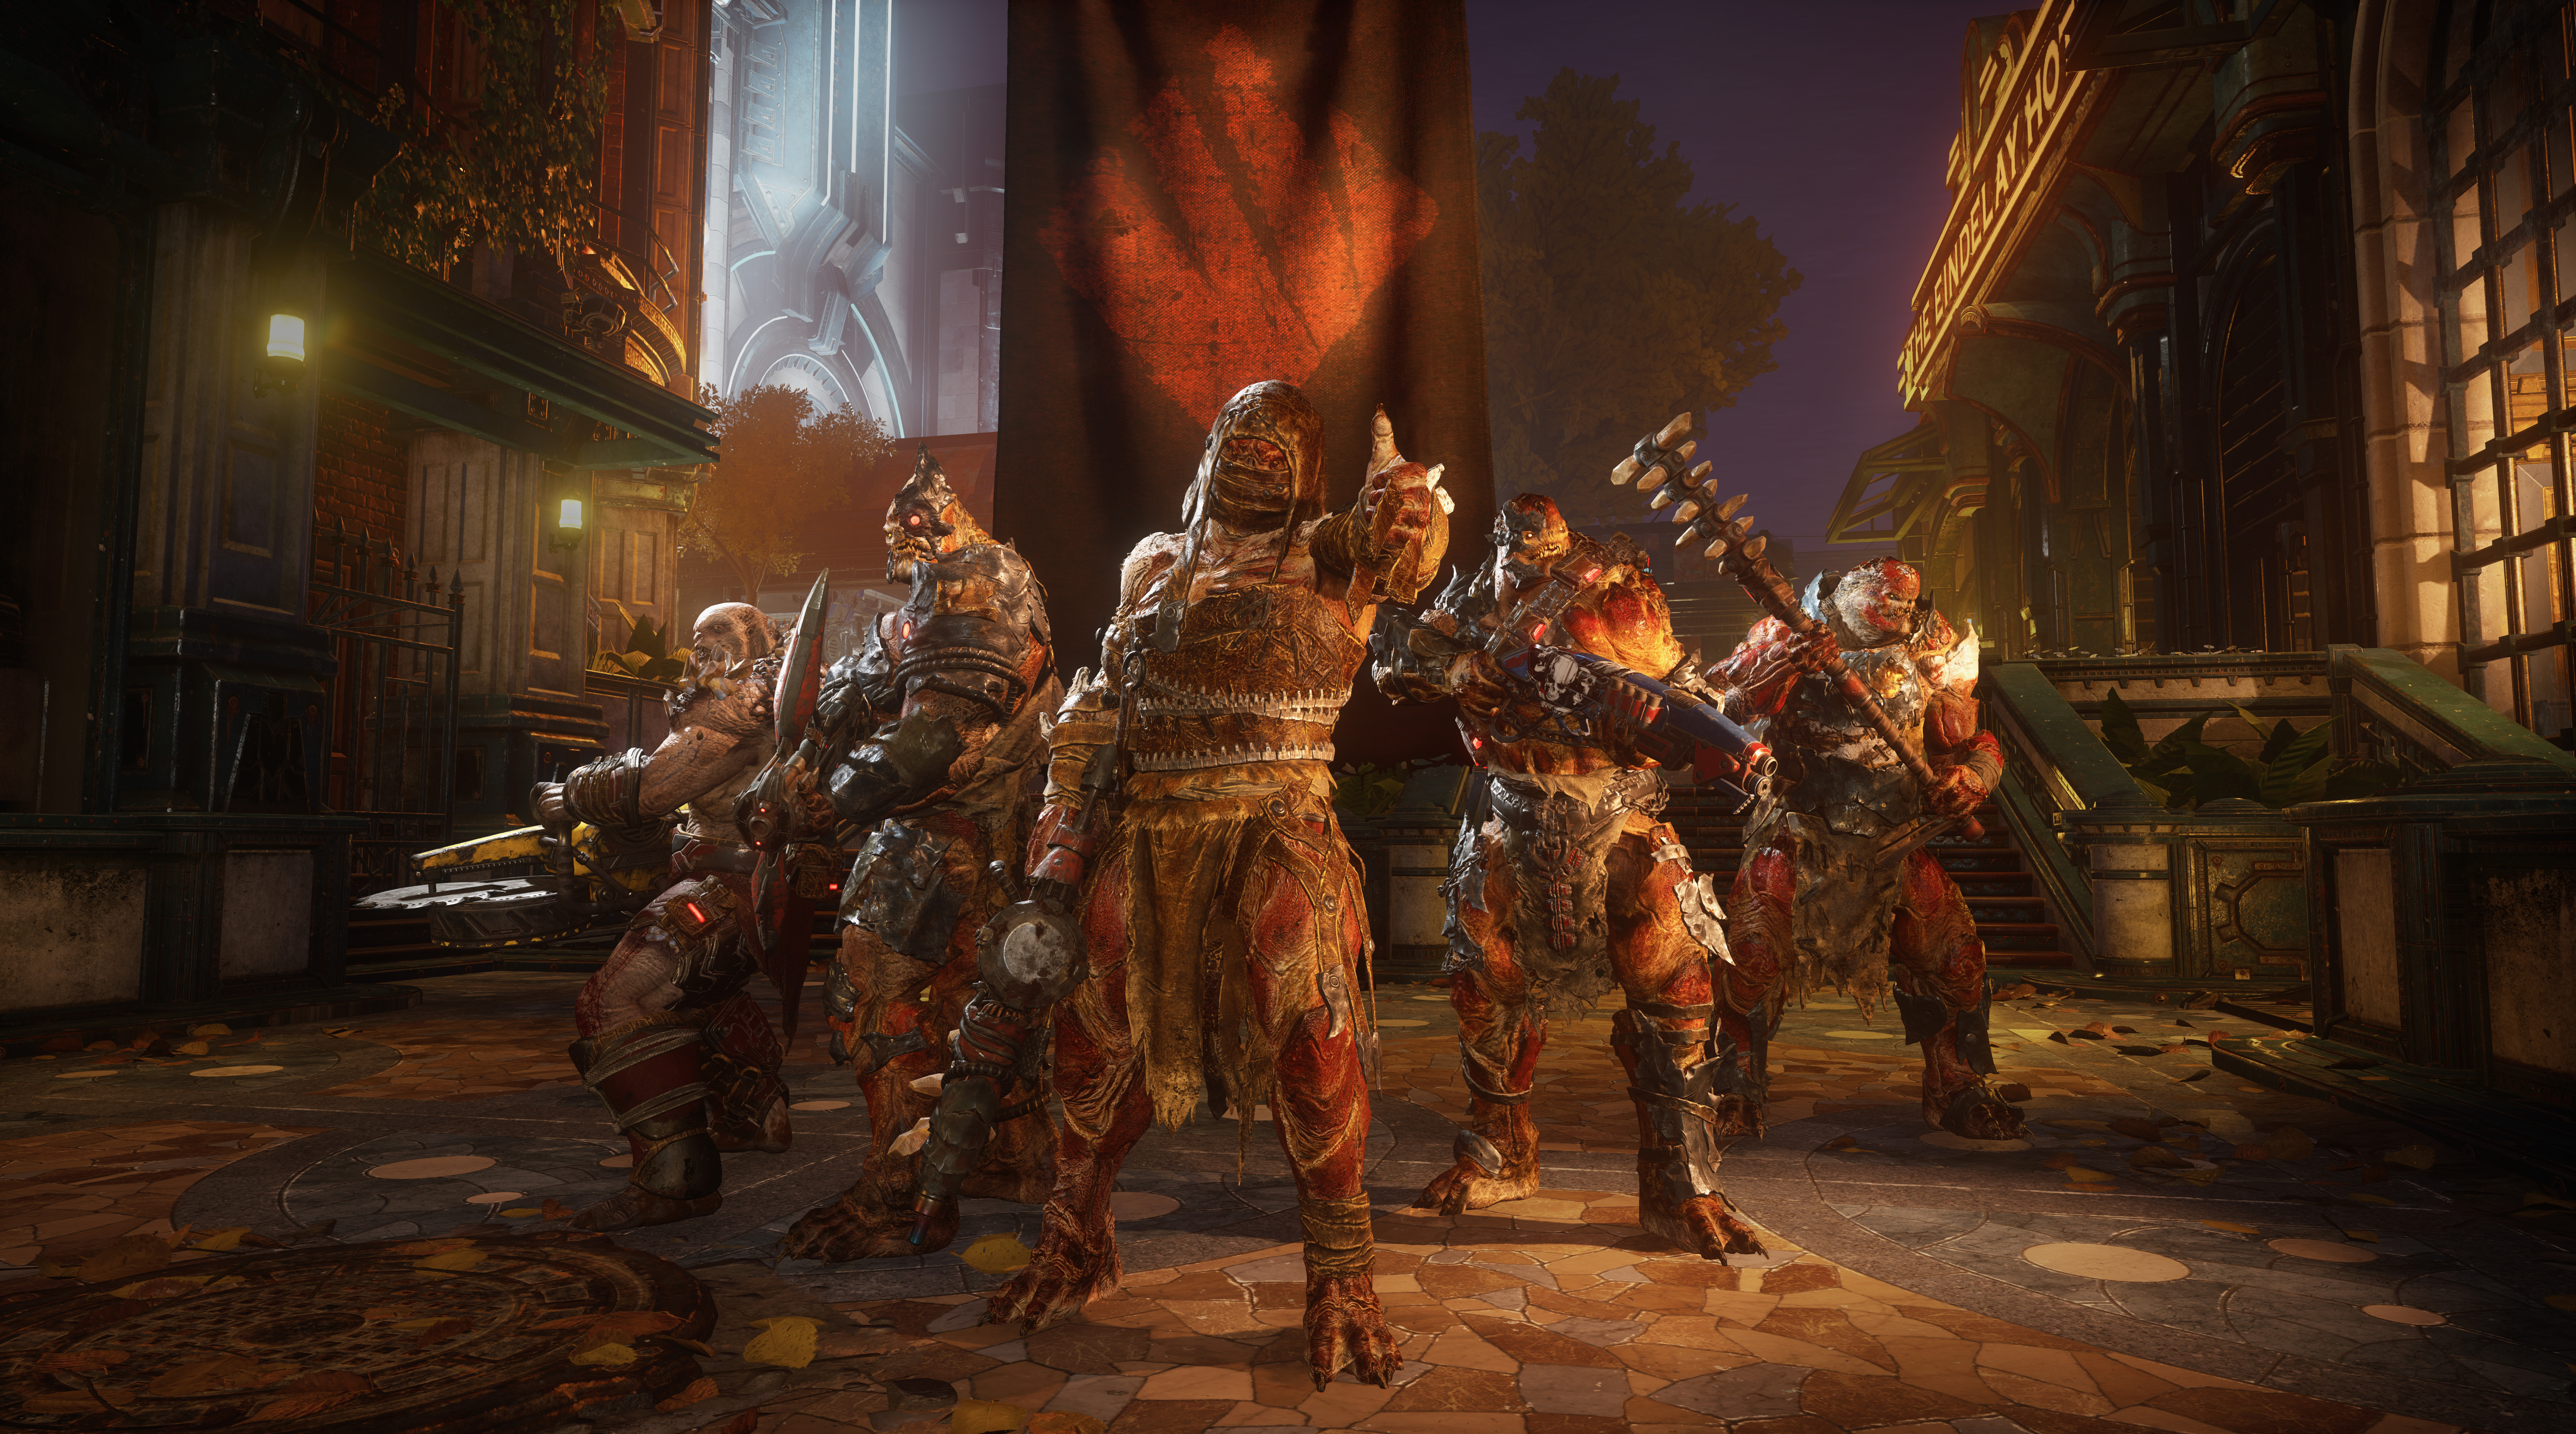 Locust enemies, part of the Swarm, as modeled in Gears 5. This image comes from the technical test, held July 2019, prior to the game's launch.